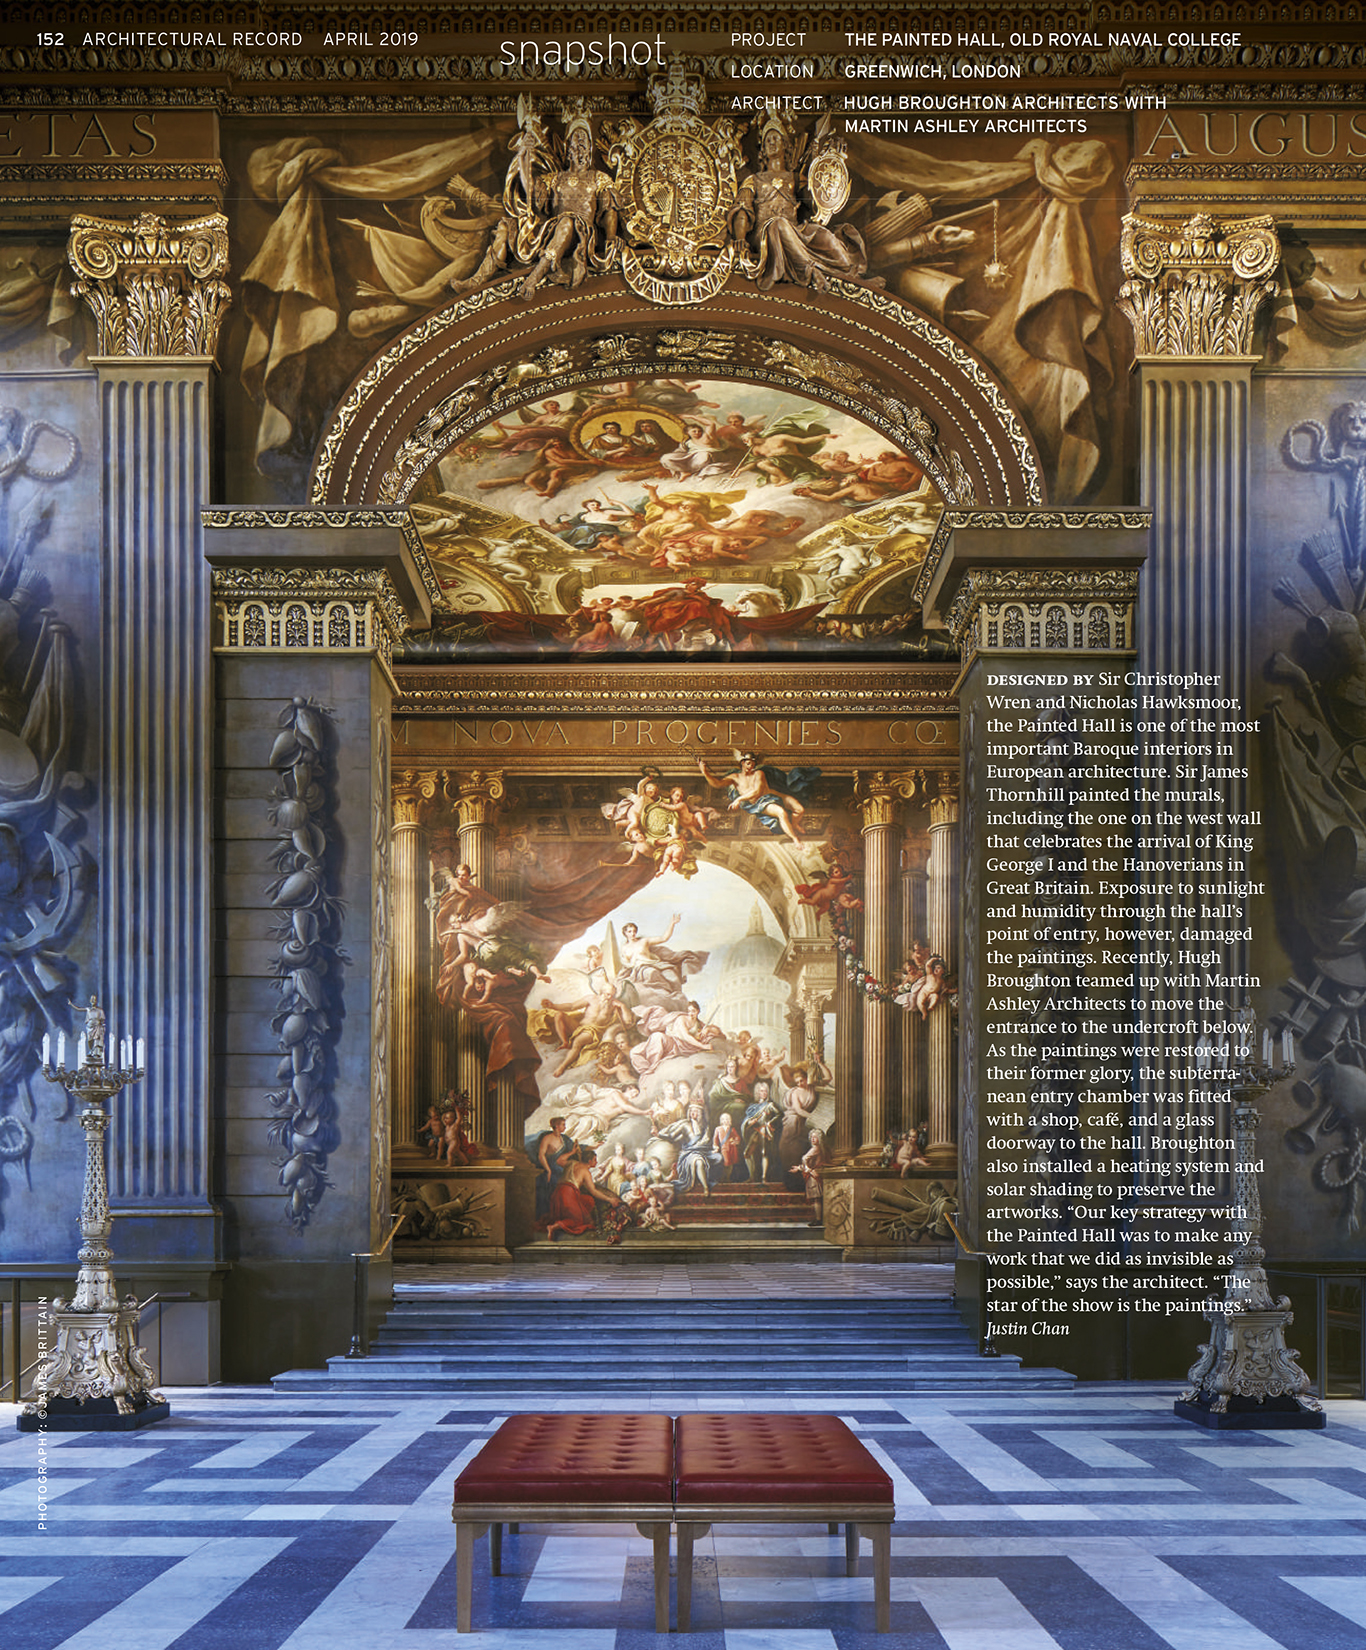 2019_04_PaintedHall_ArchitecturalRecord.jpg